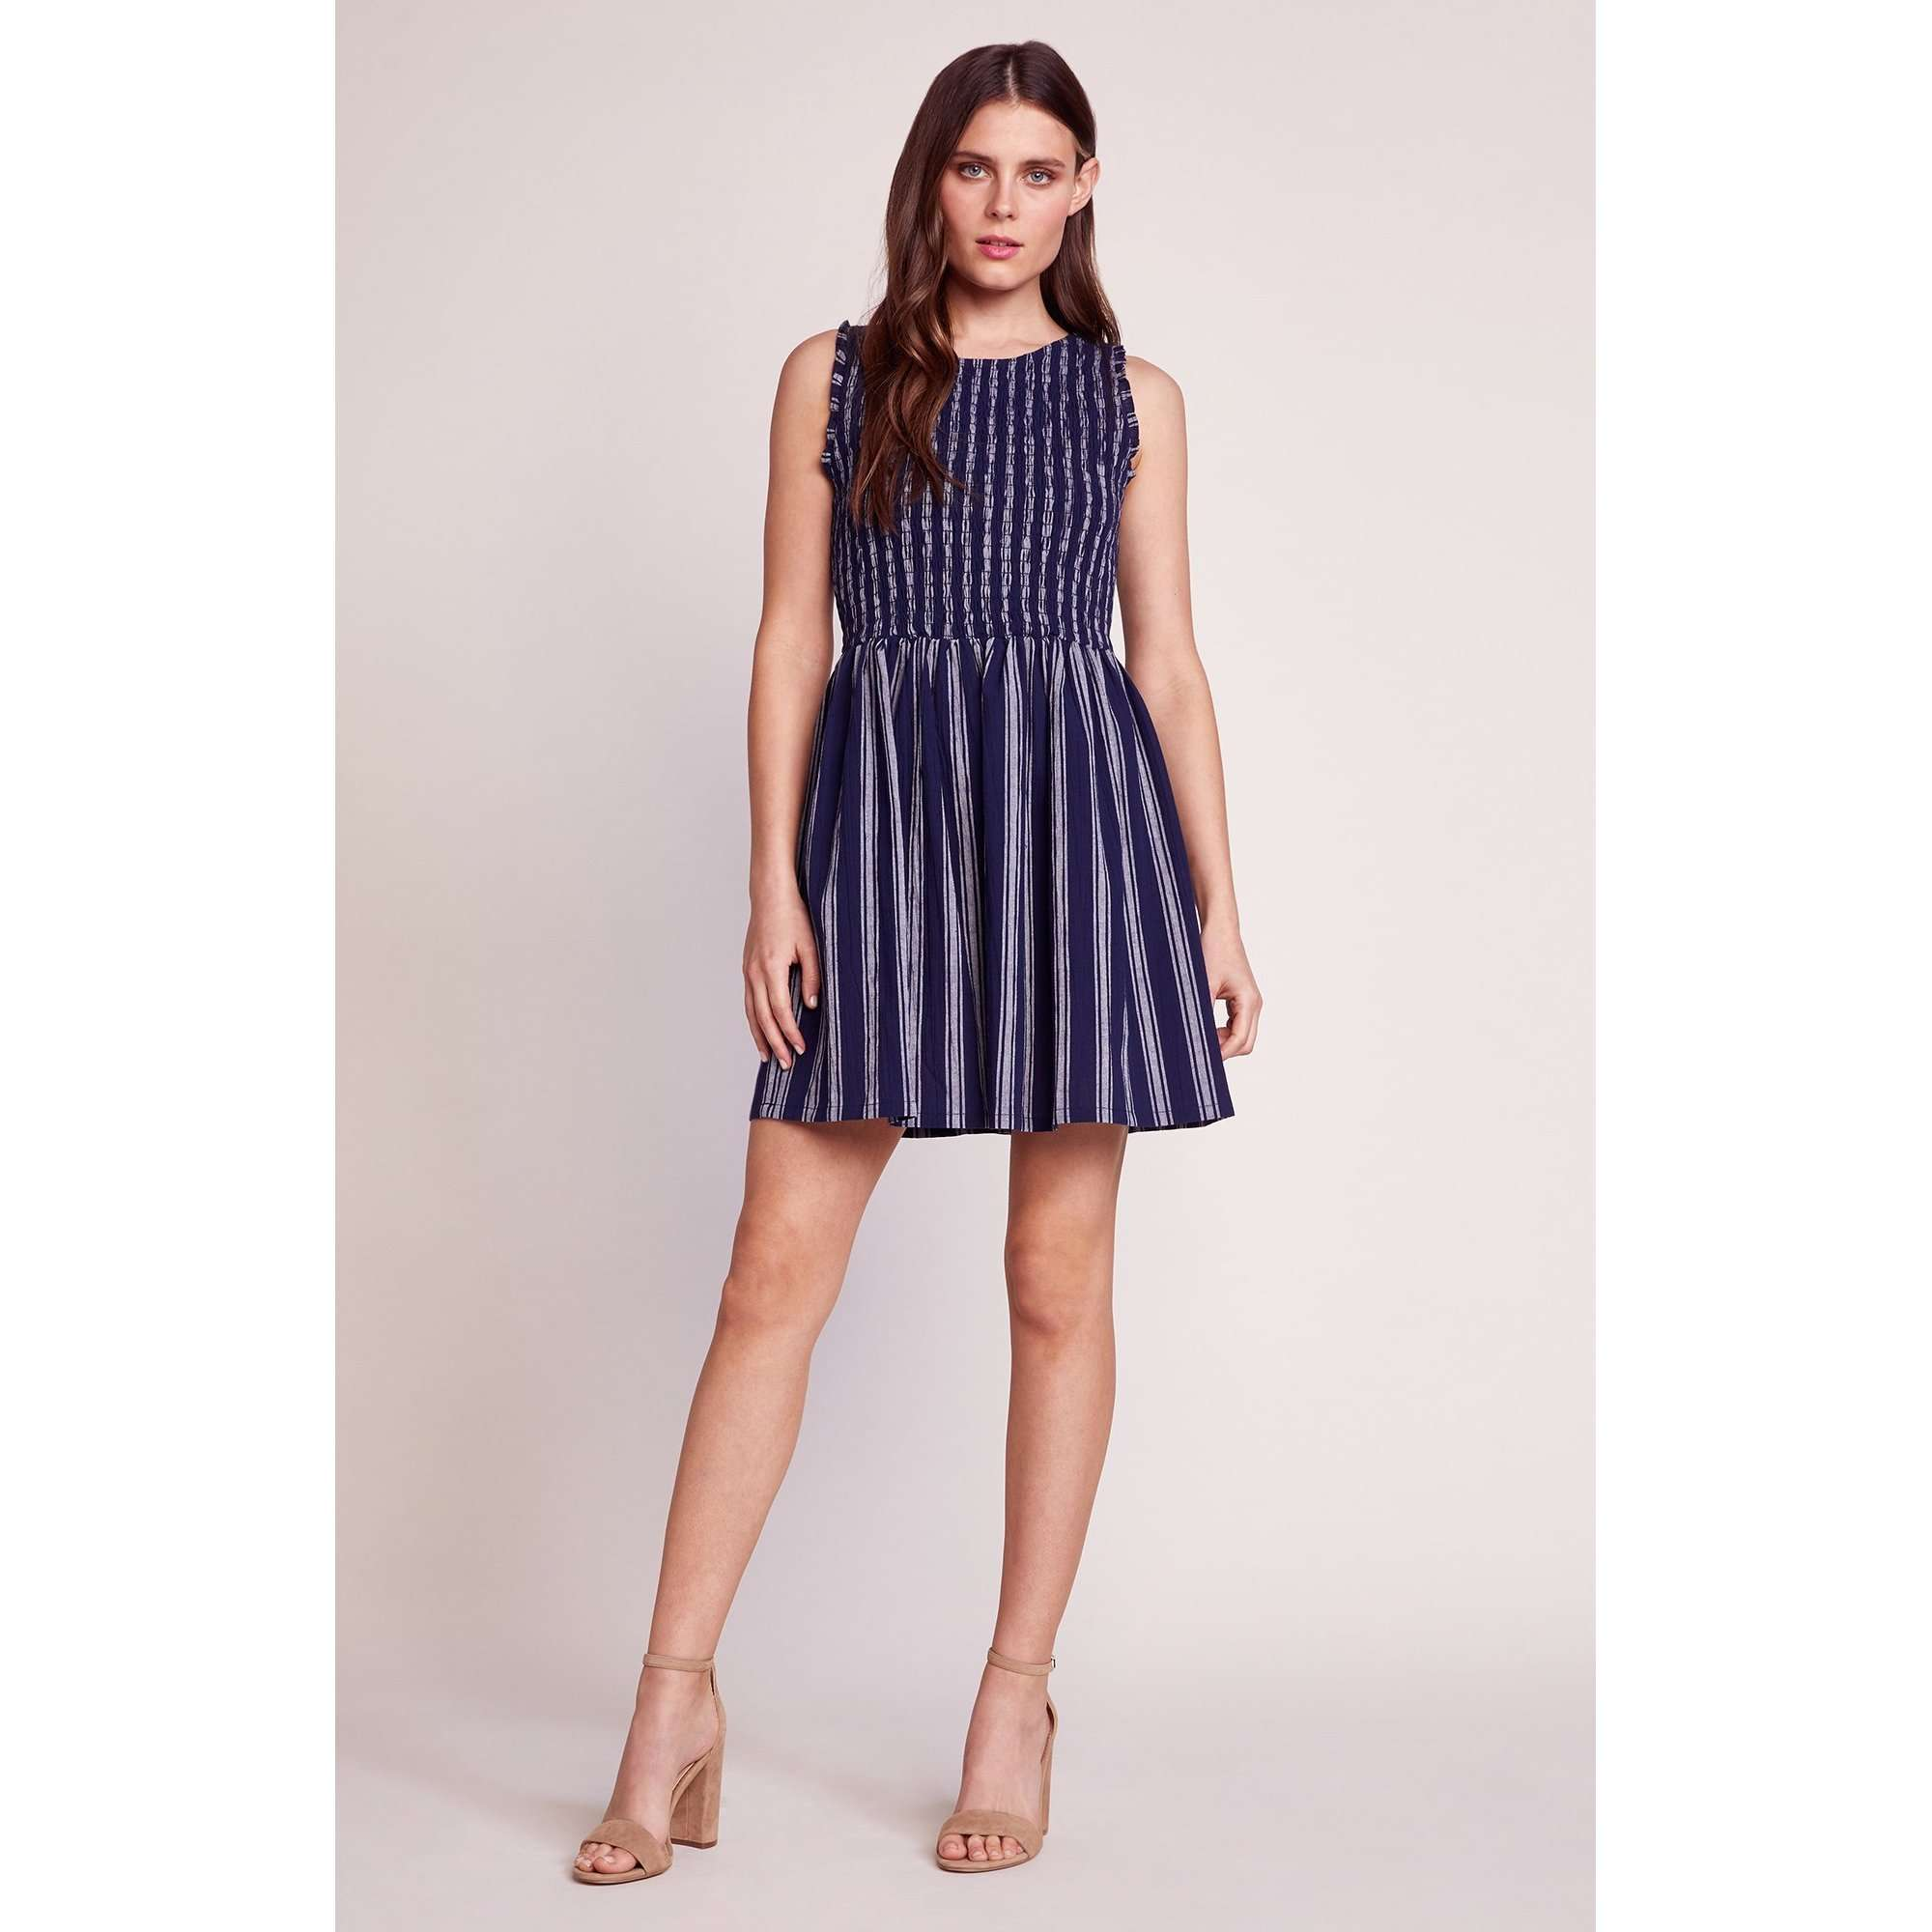 8.28 Boutique:BB Dakota,BB Dakota You Can Jive Navy Dress,Dress